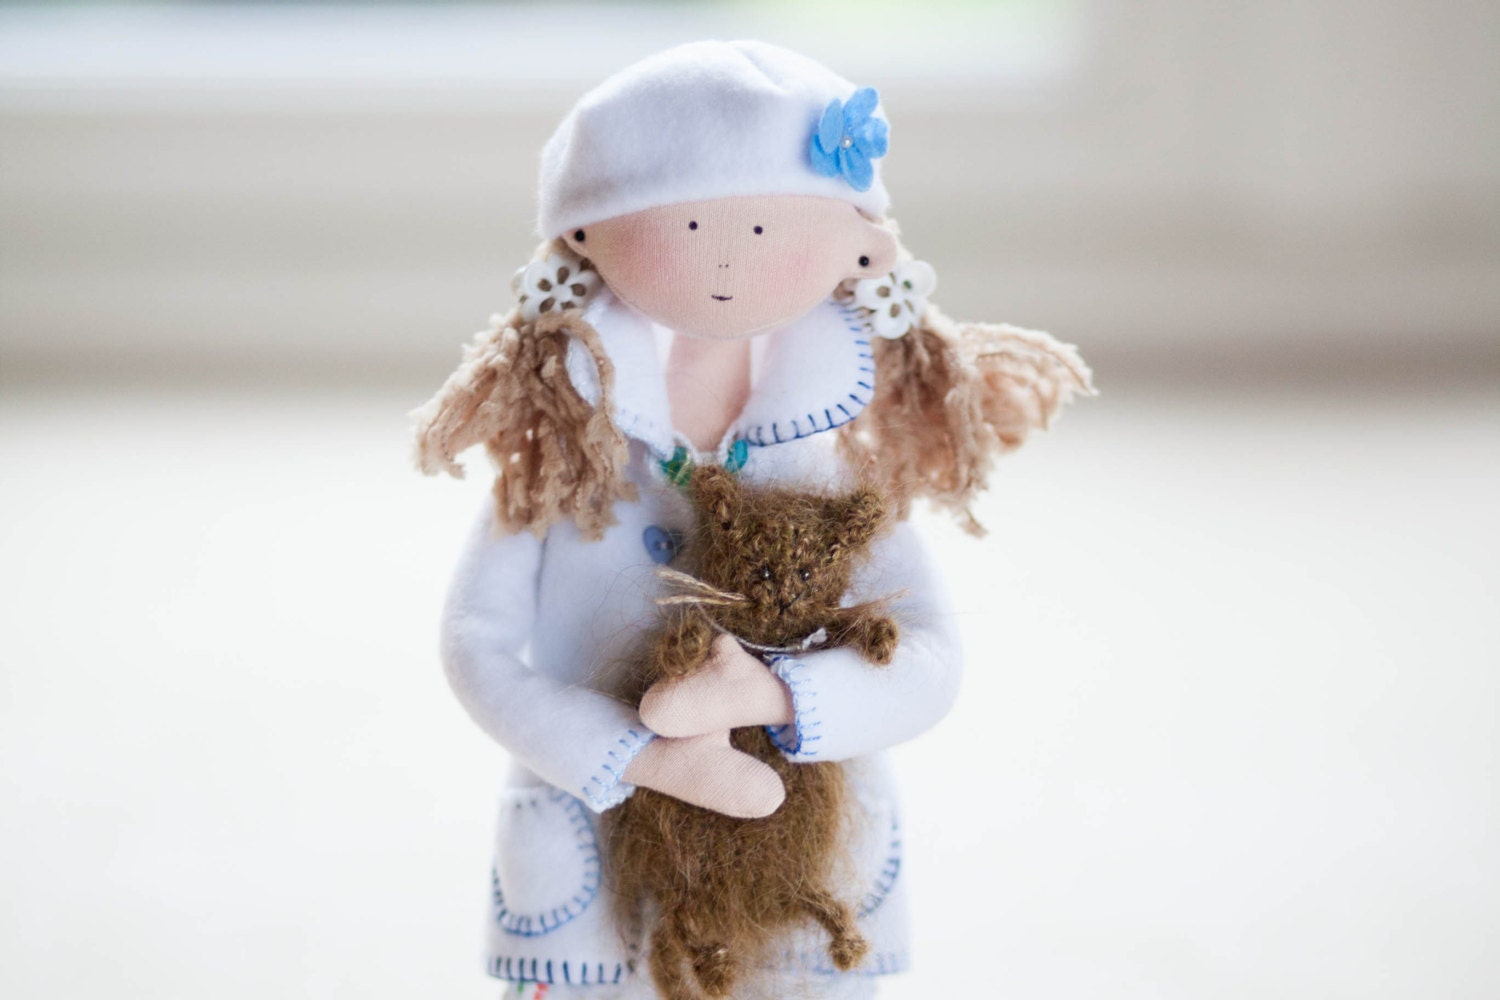 Millie Rag Doll with a Cat-Winter/Christmas Home Decor-Christmas Ornament-OOAK Art Doll-Interior Decoration-White/Blue-Cute Cloth Doll-UK - MintyClub